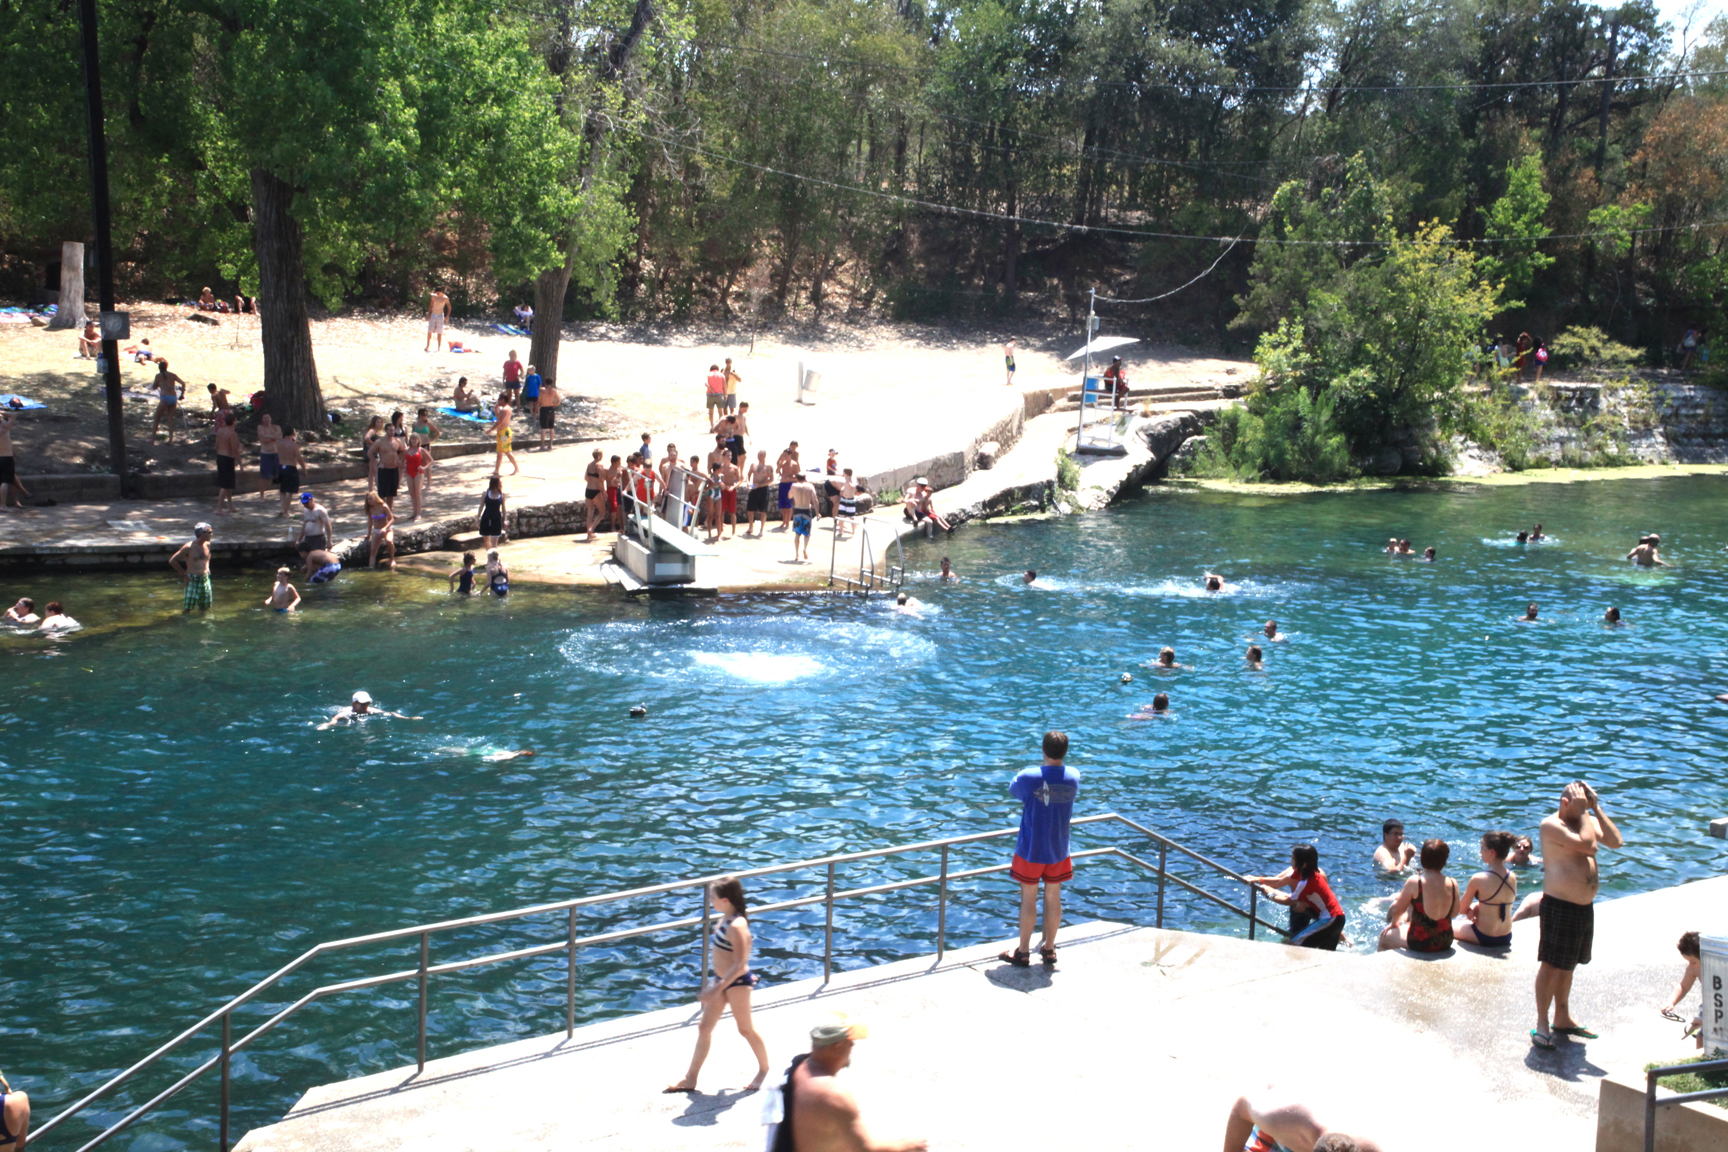 Travis barton springs pool 2.jpg